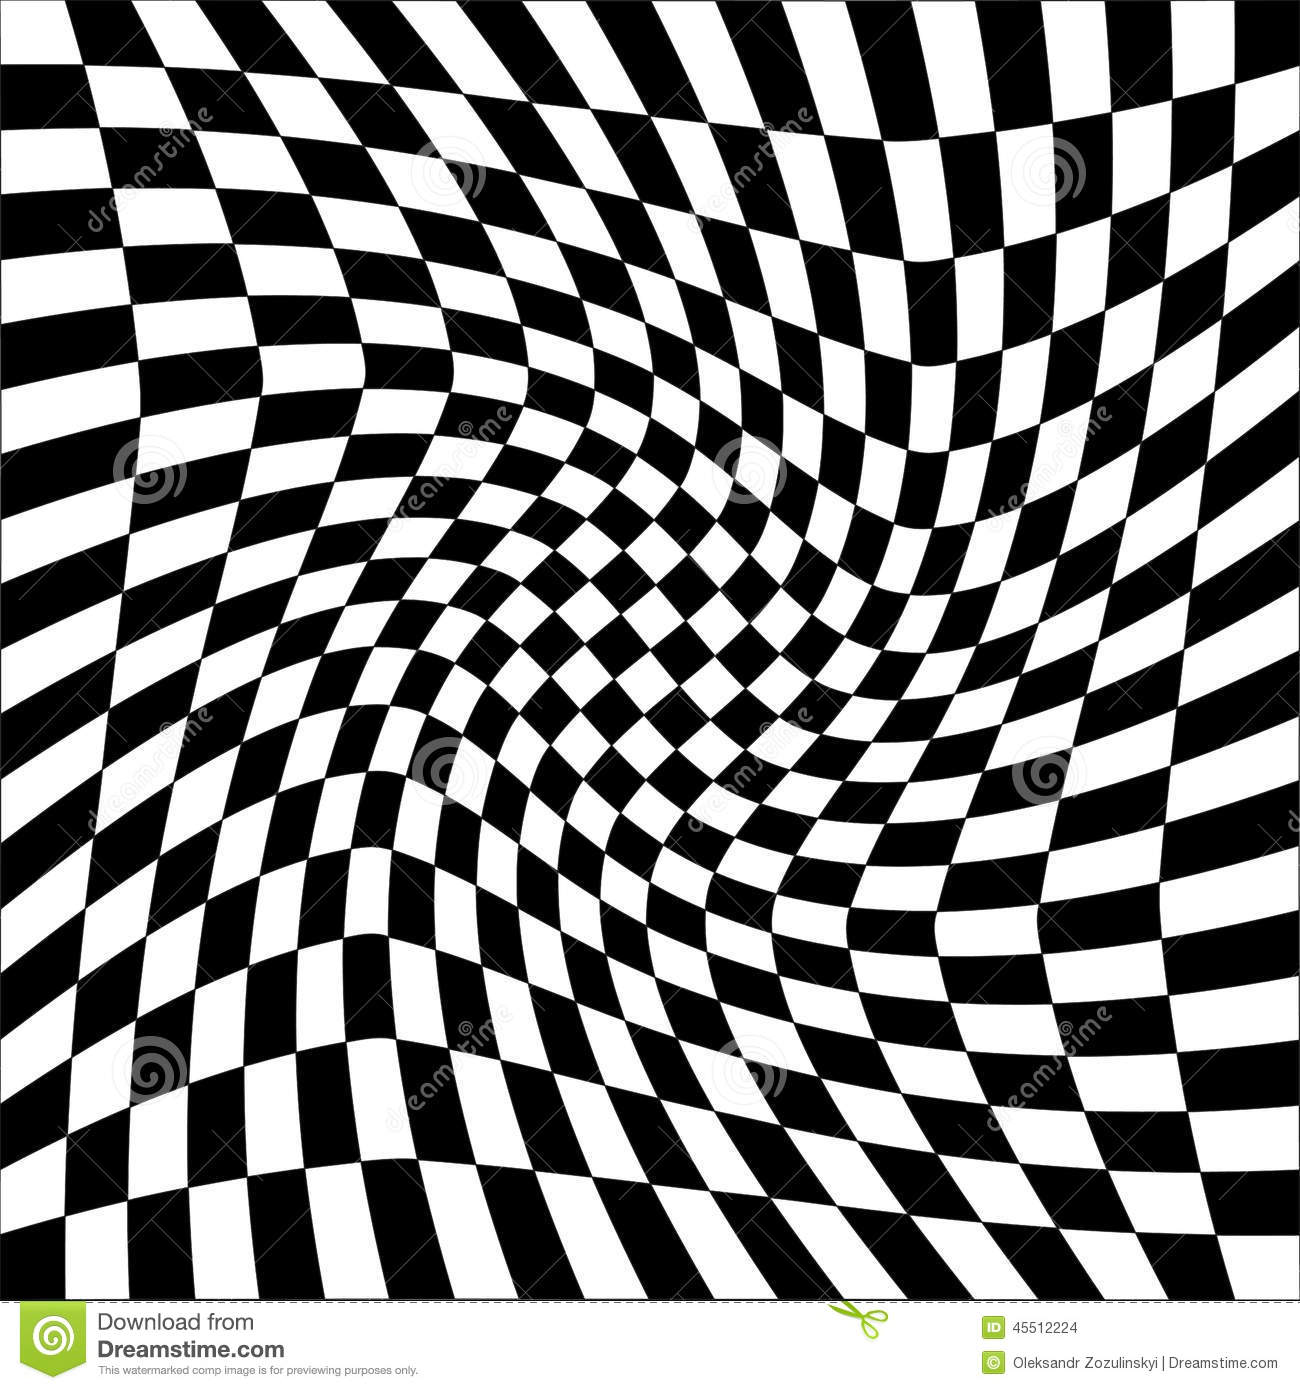 Black And White Striped Wallpaper Abstract Background With Black And White Squares Raster